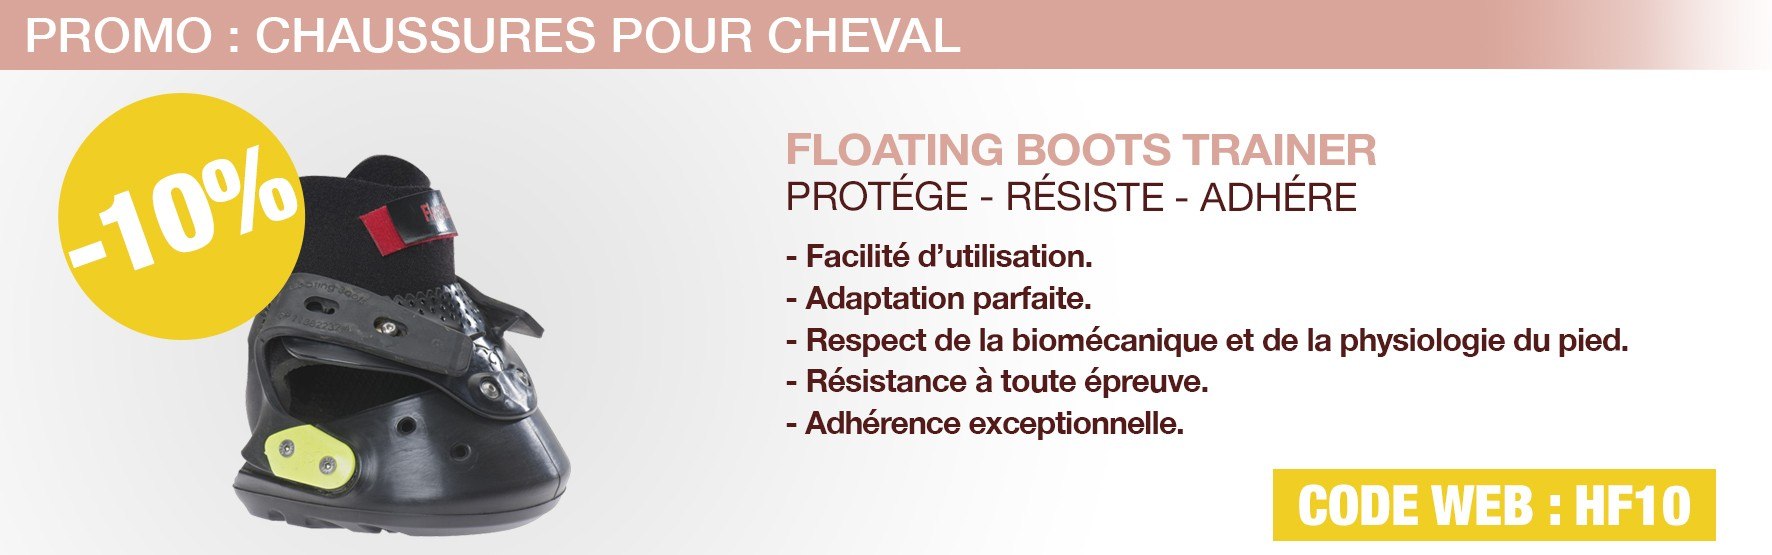 hipposandale - chaussons - pied - sabot - cheval - equitation - Floating - Boots - soin